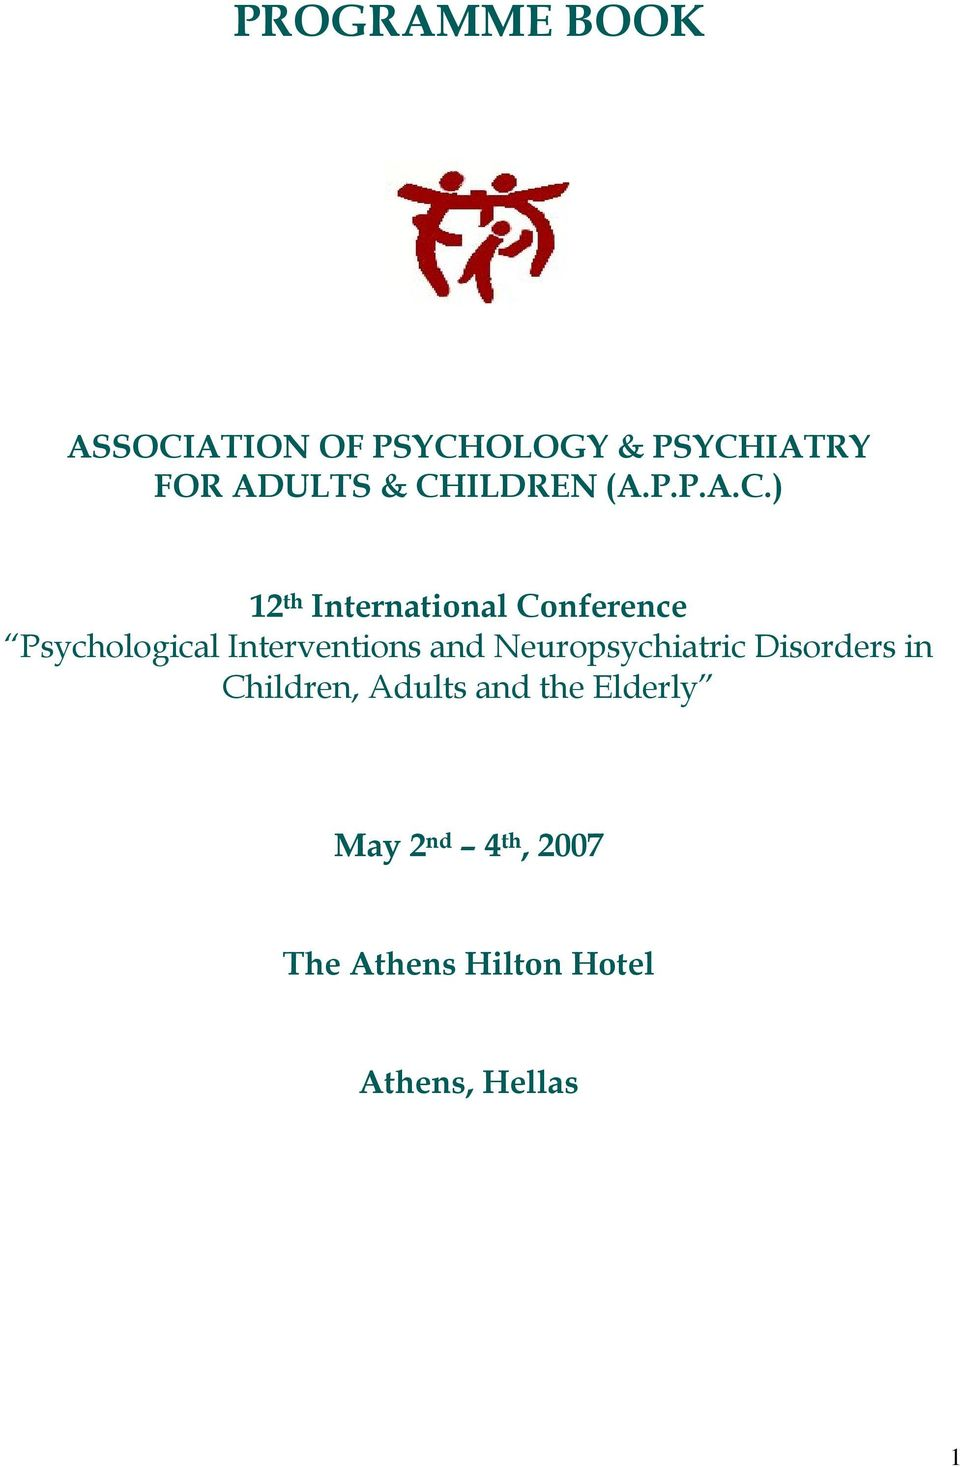 Interventions and Neuropsychiatric Disorders in Children, Adults and